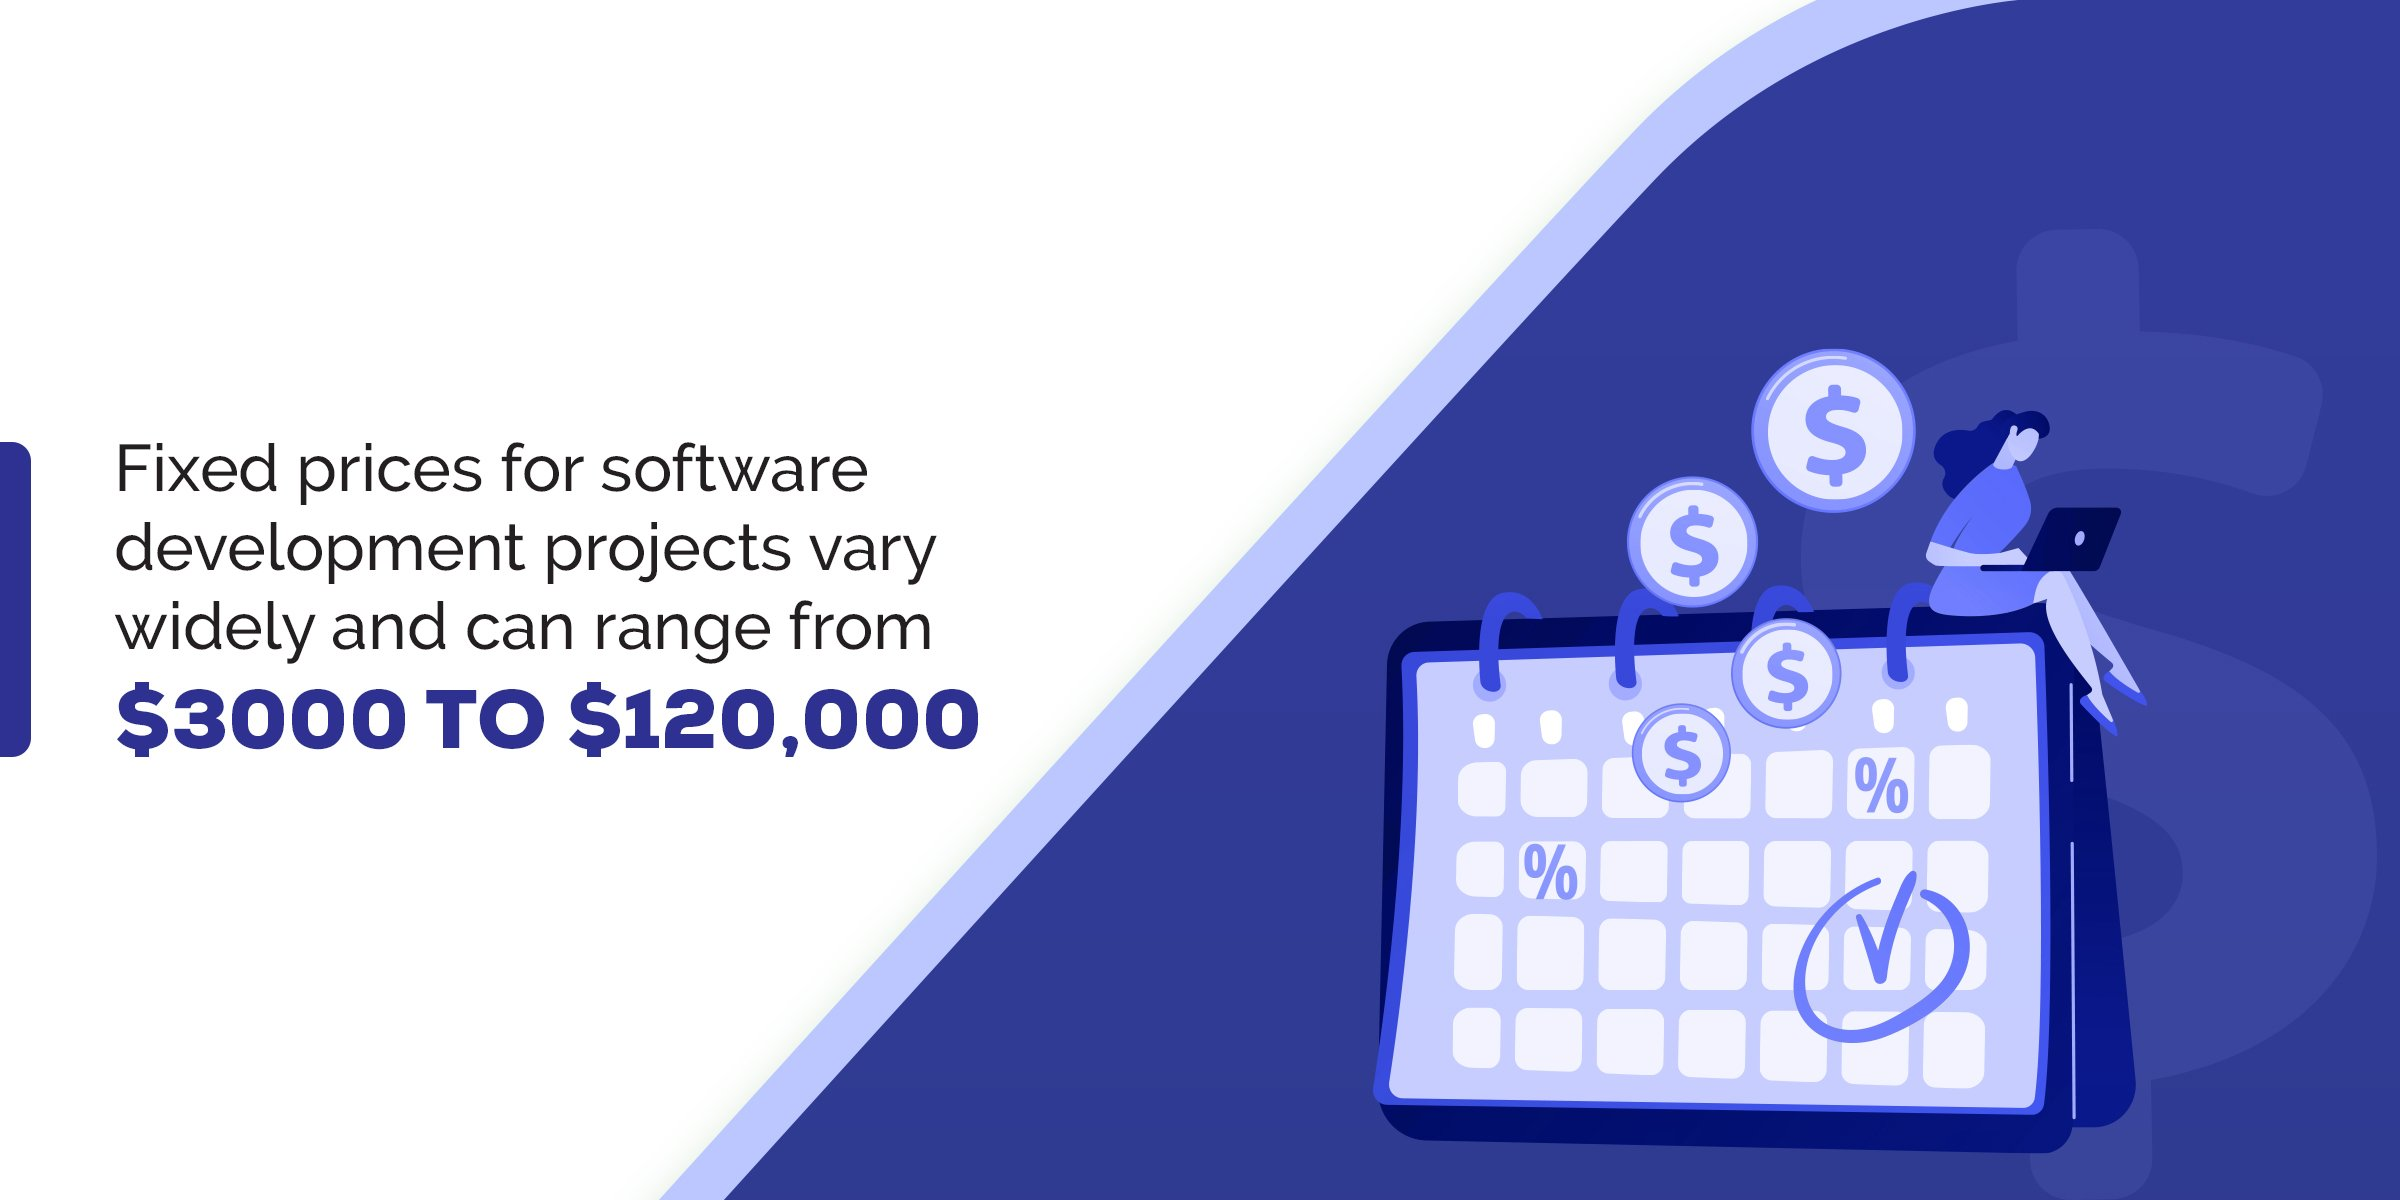 Fixed Price for Software Development Varies Greatly